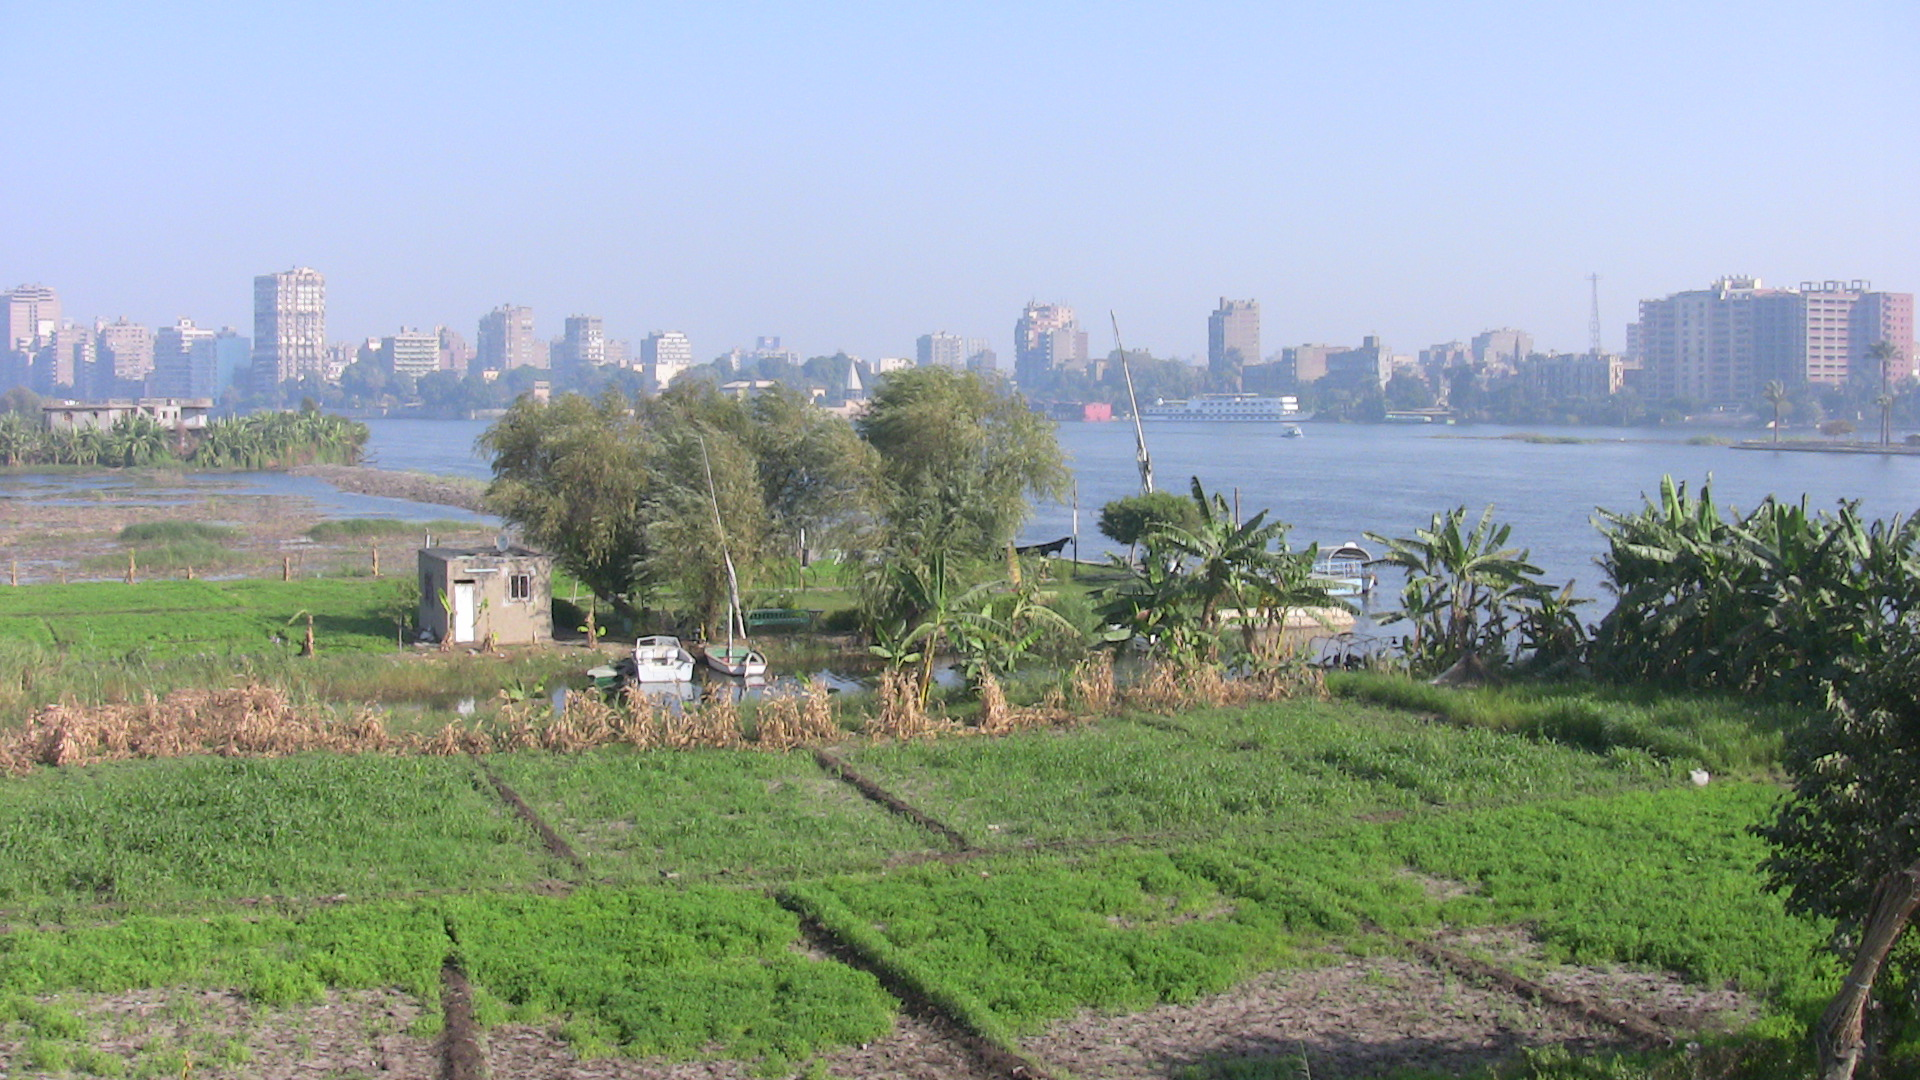 Situated 20 minutes south of downtown Cairo, the Nile island of al-Qursaia looks like a green paradise of sugar cane plantations and profuse clover fields.